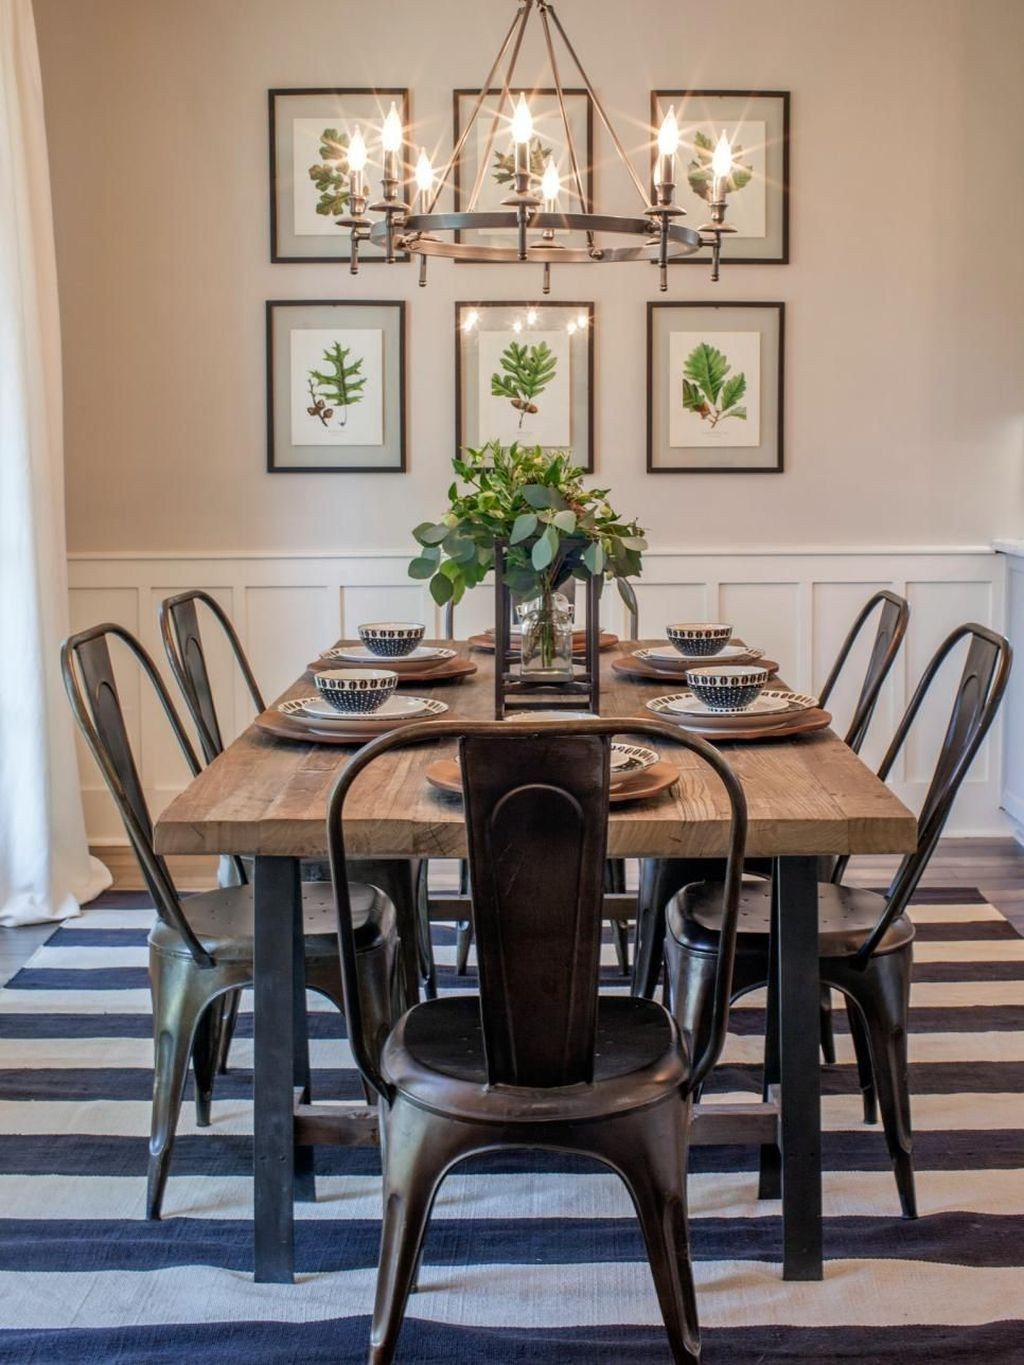 Incredible 32 Inspiring Farmhouse Black Table Design Ideas To Manage Squirreltailoven Fun Painted Chair Ideas Images Squirreltailovenorg